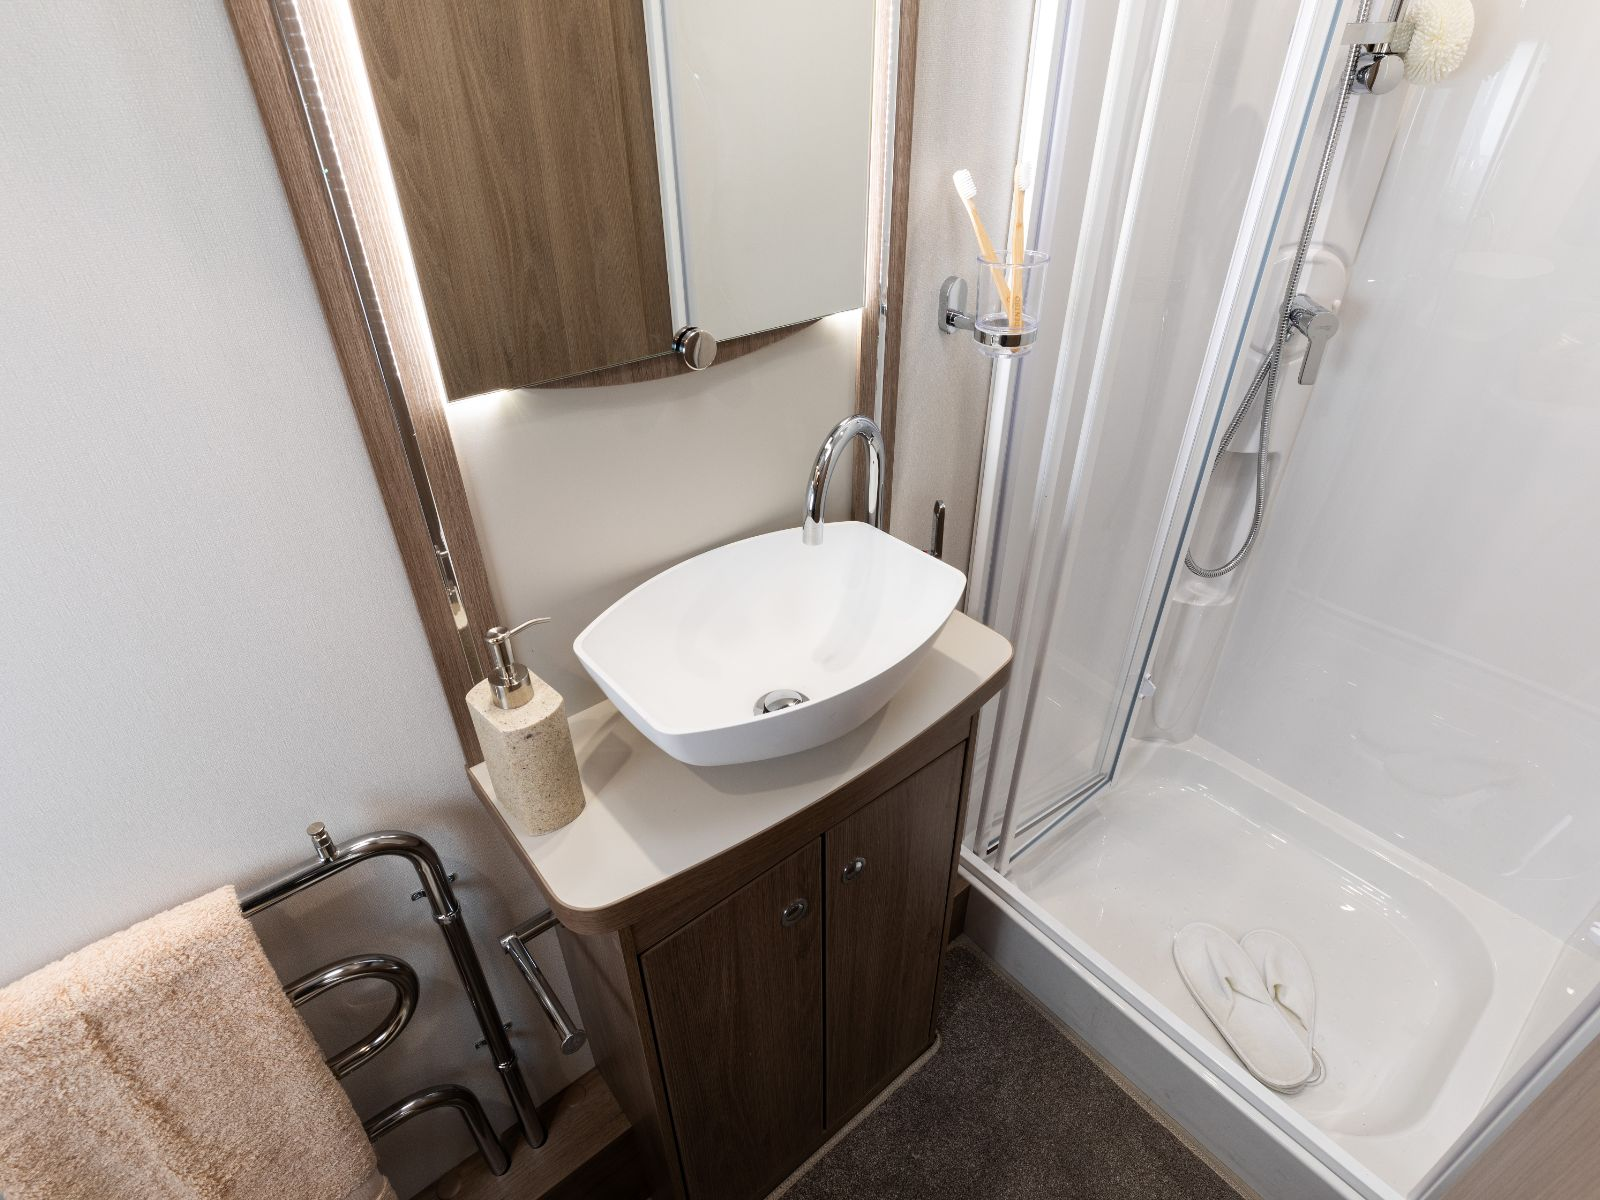 Bathroom sink with walk in shower to the right, mirror above and heated towel rack to the left'